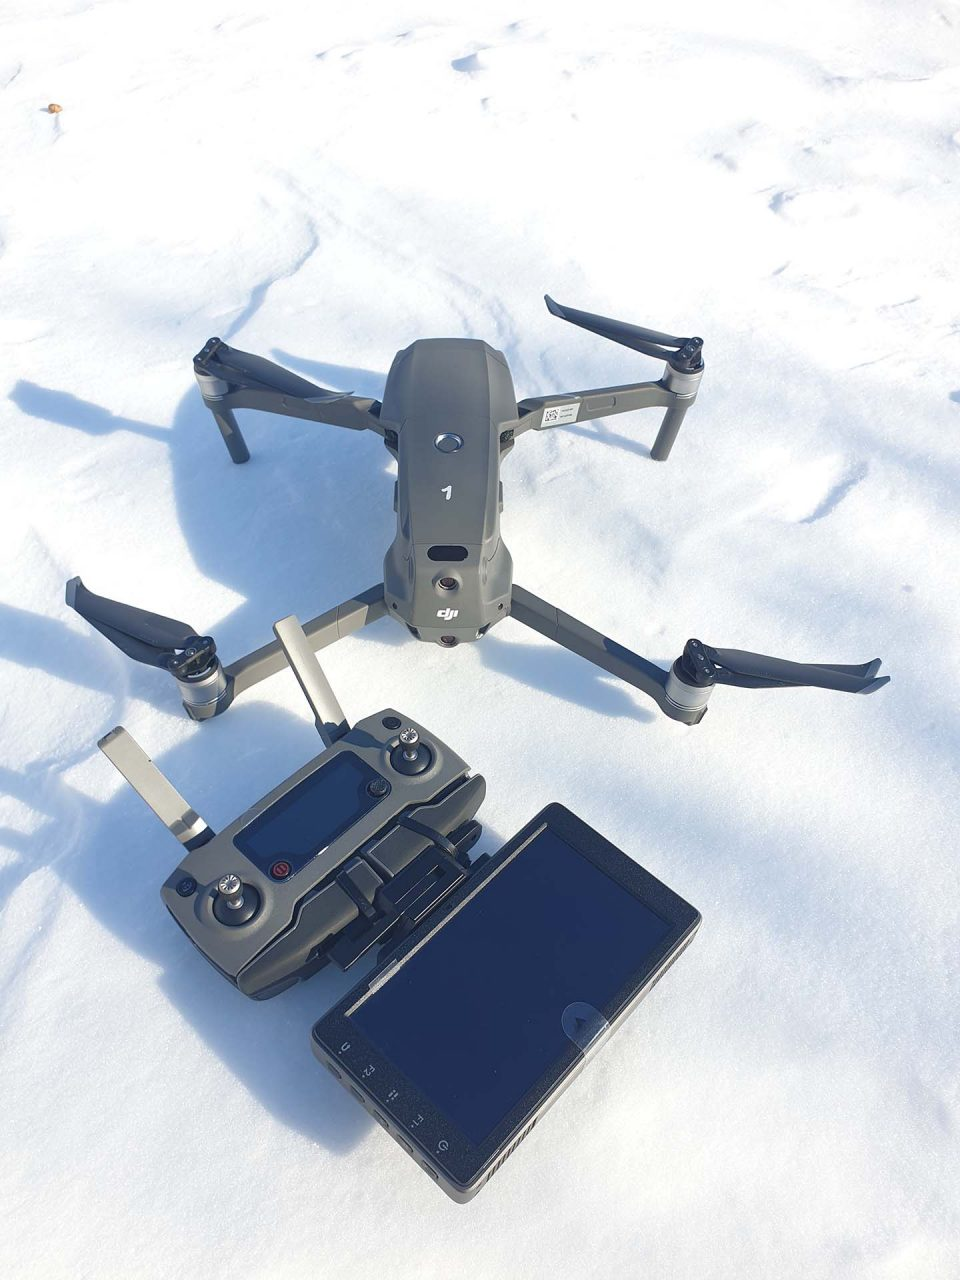 הטסת רחפן בשלג | flying drone in the snow